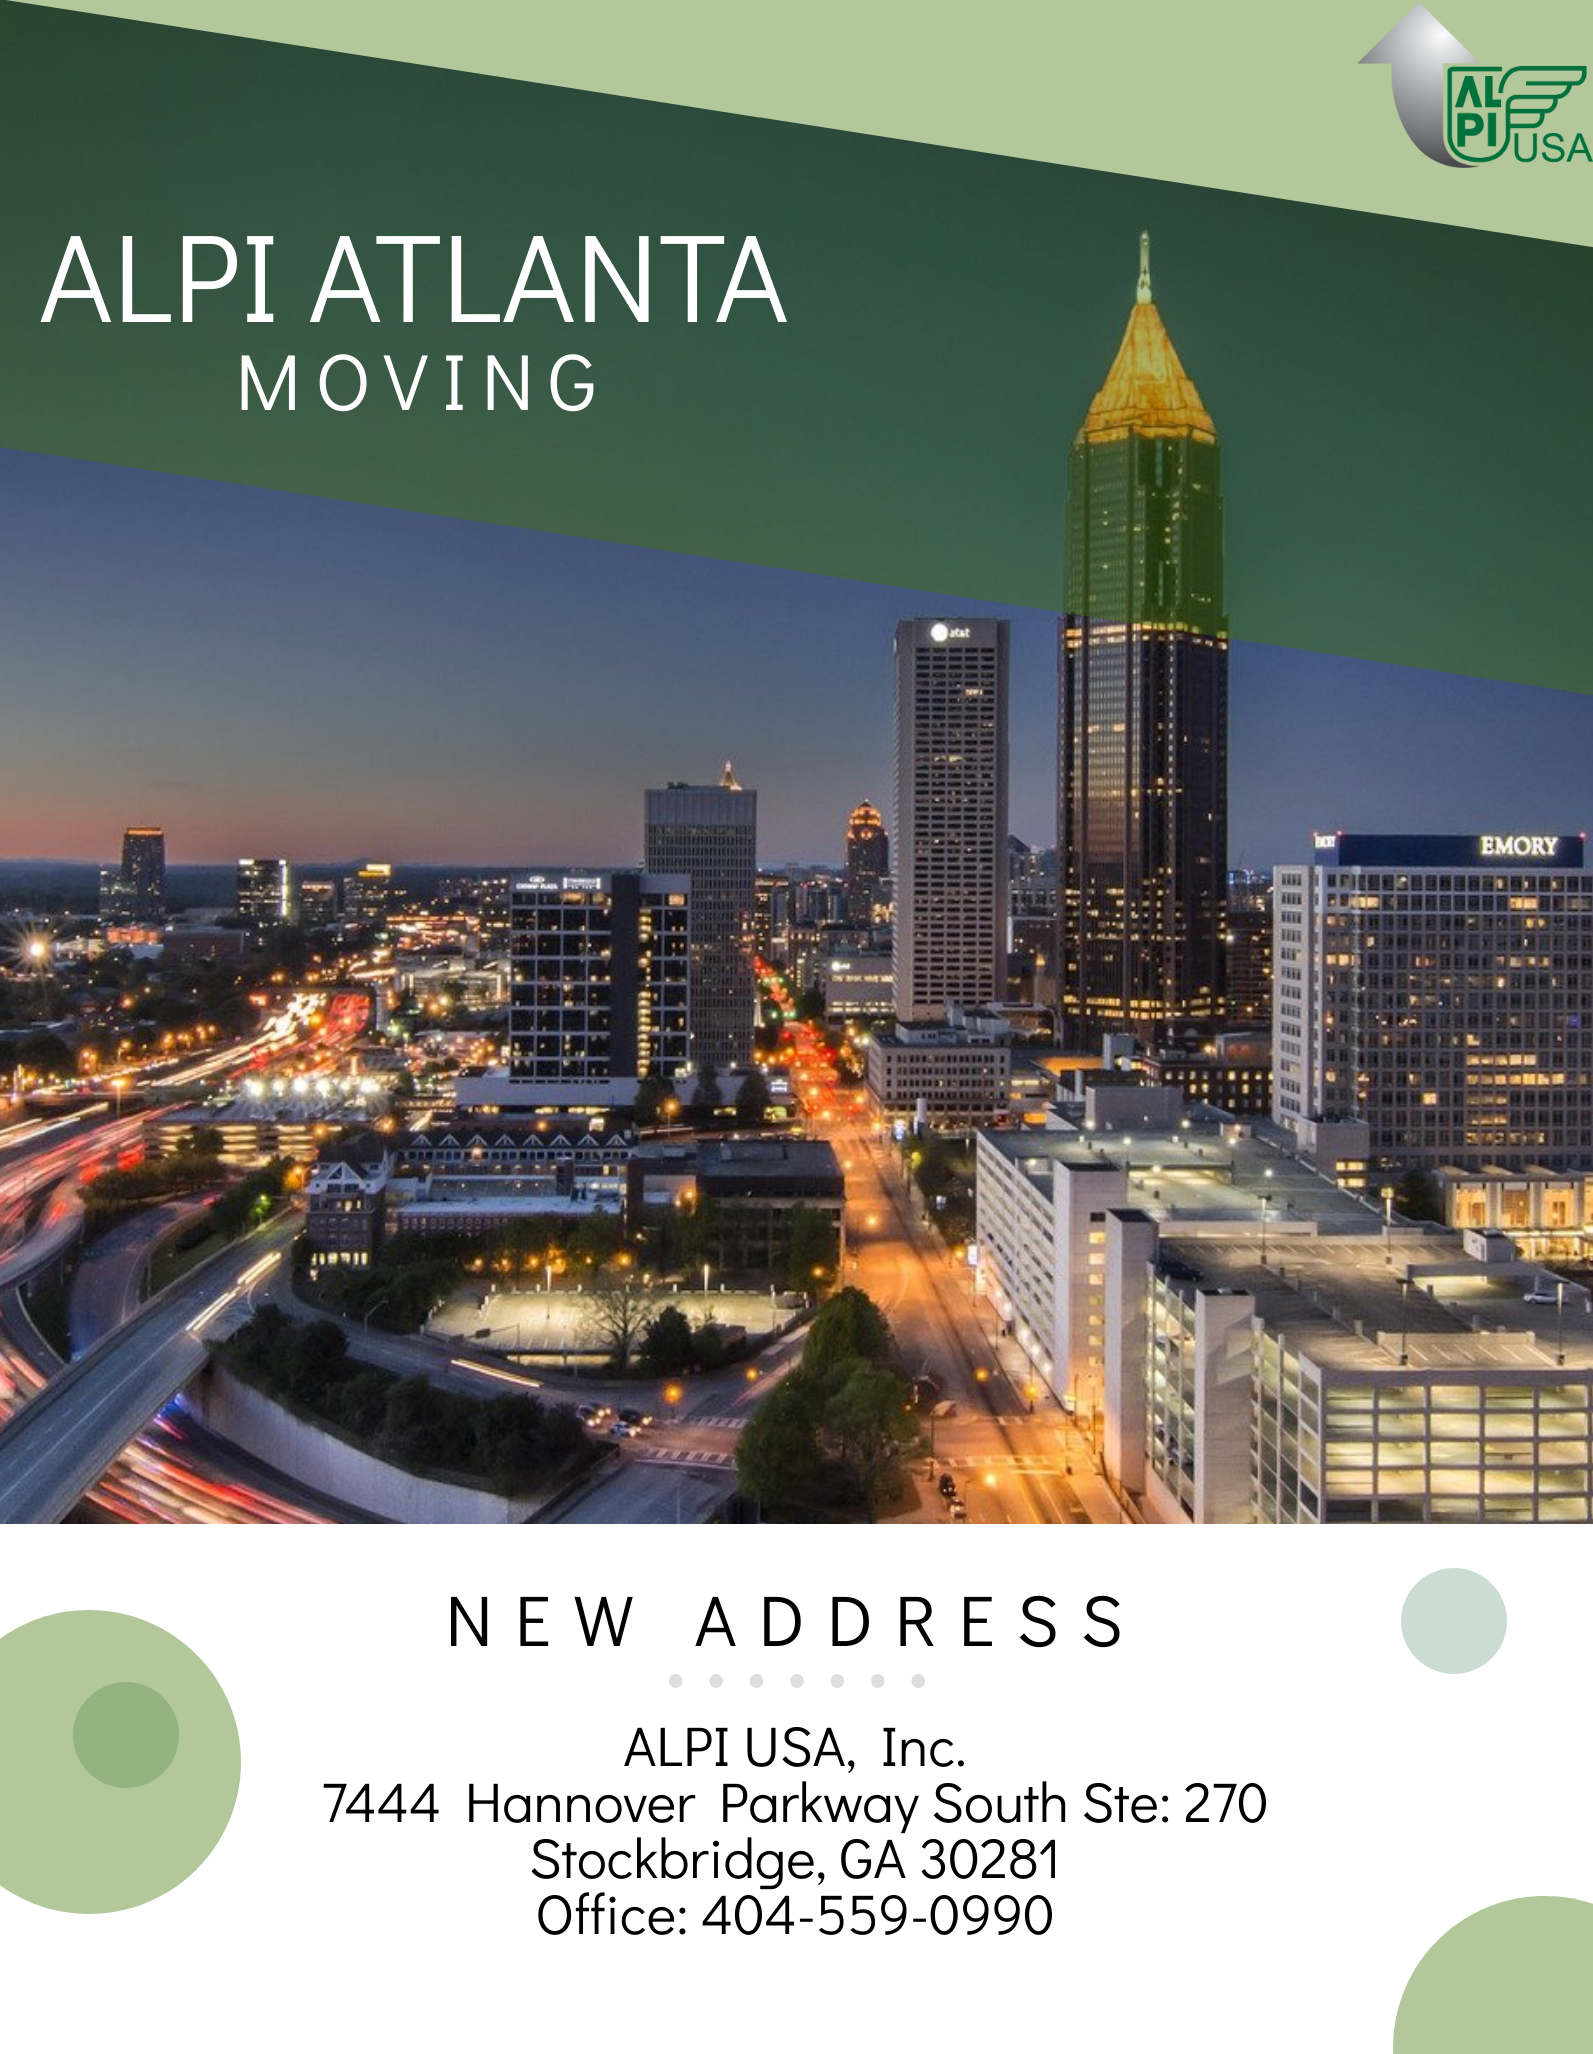 ALPI Atlanta Moving